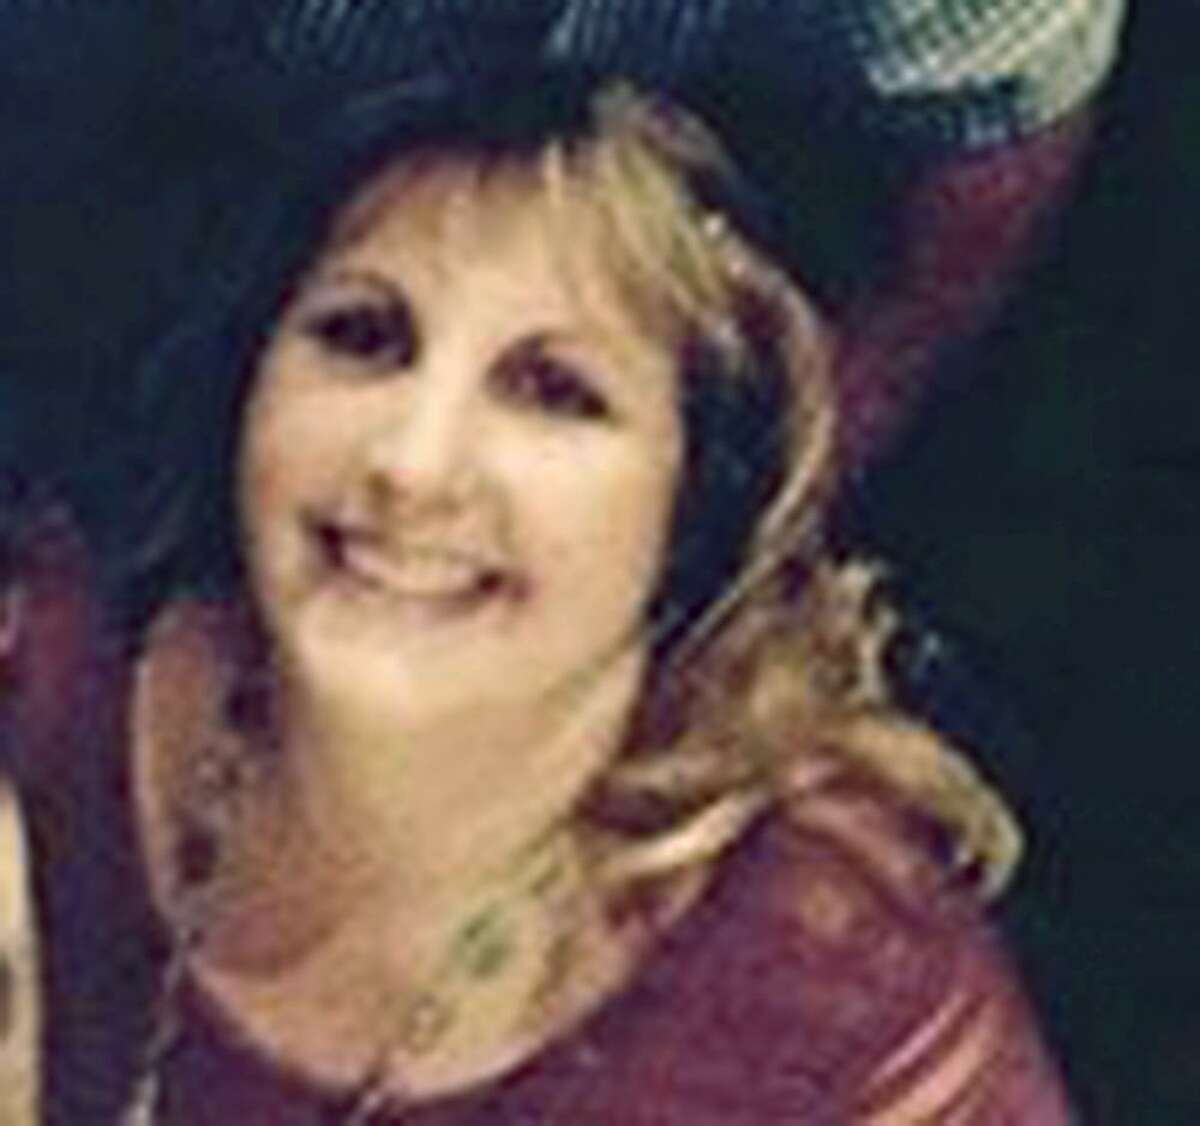 Julie Workman, 54, a nurse, survived the shooting at First Baptist Church and helped care for injured churchgoers before first responders showed up.